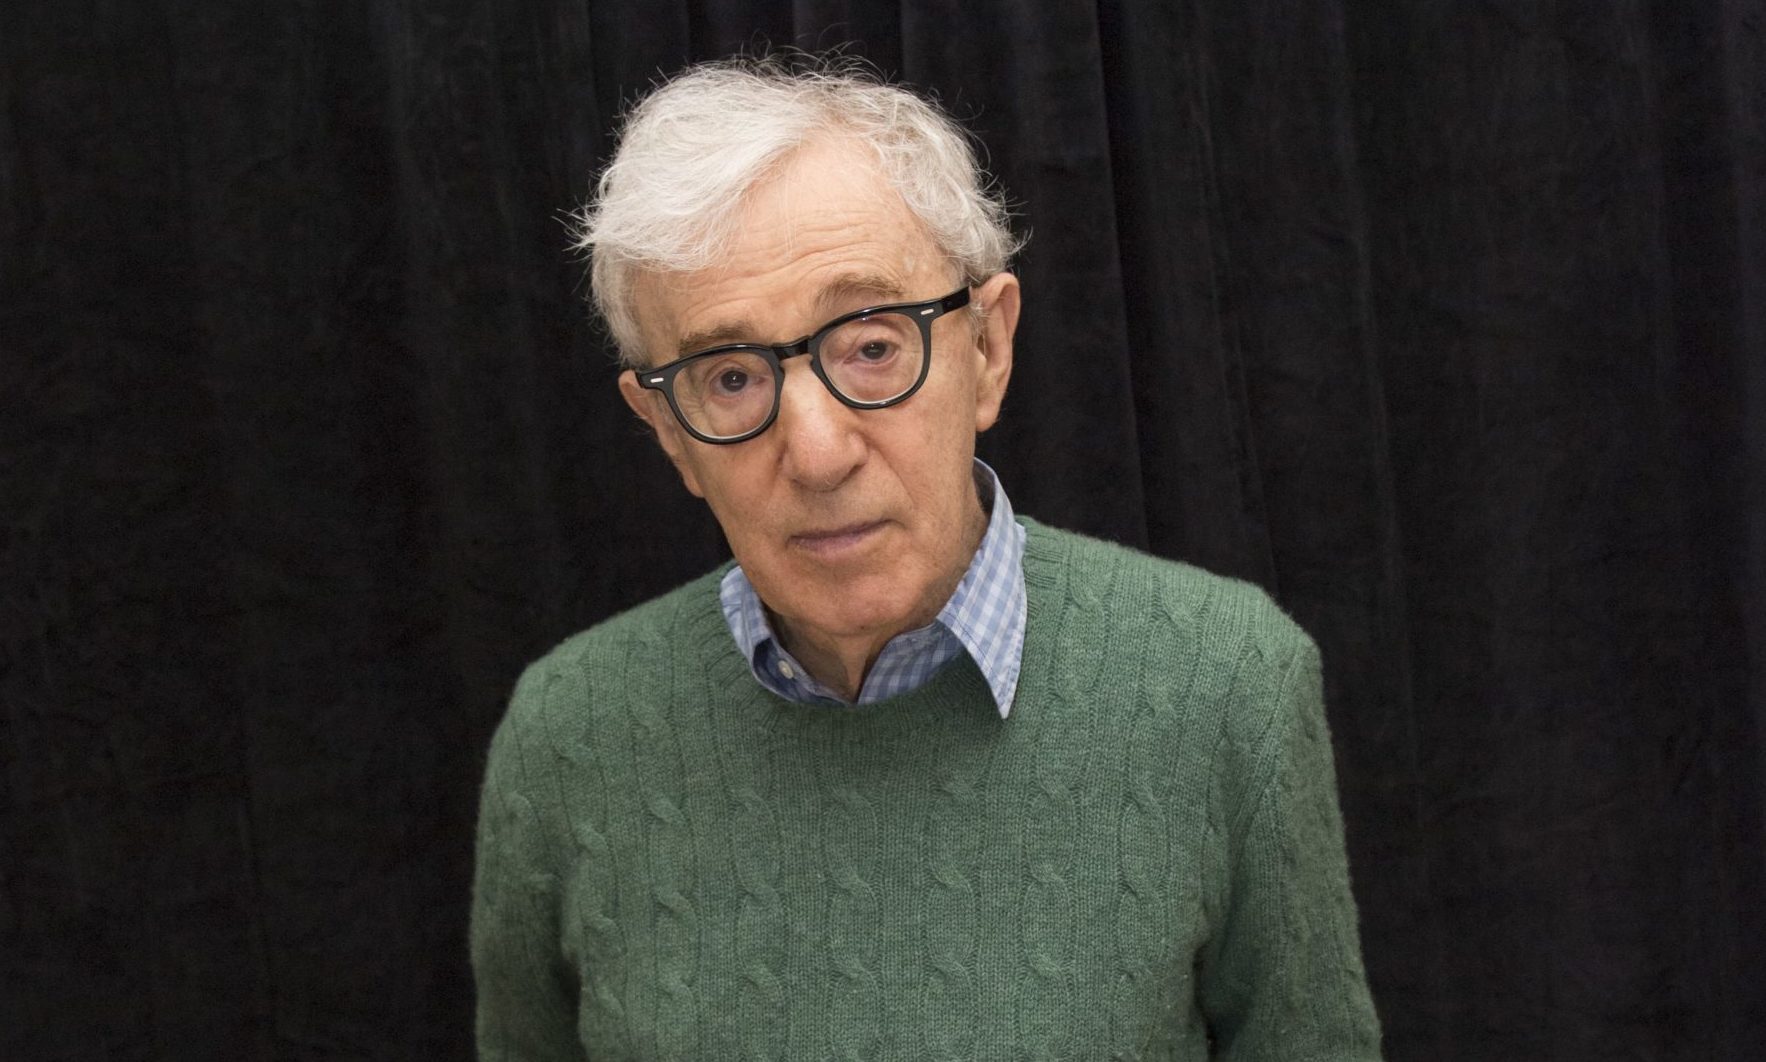 Woody Allen at the 'Wonder Wheel' film photocall in New York